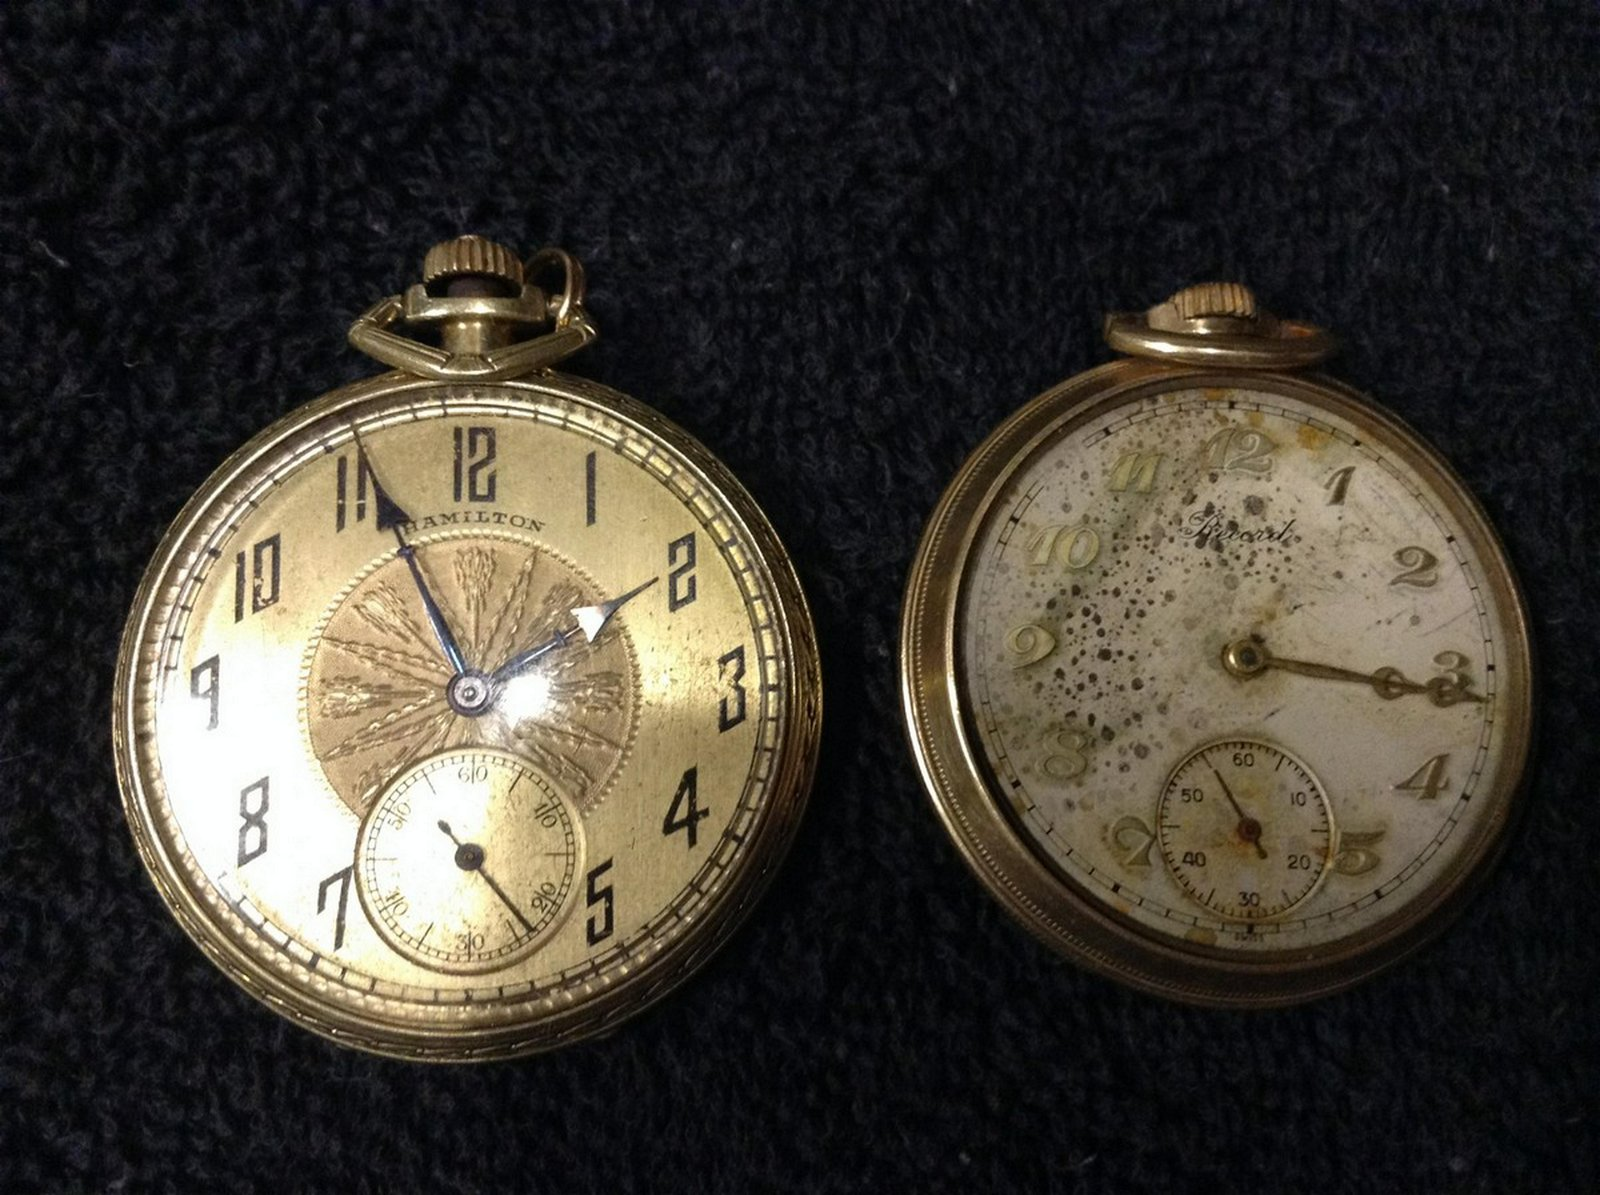 Hamilton pocket watch working other not